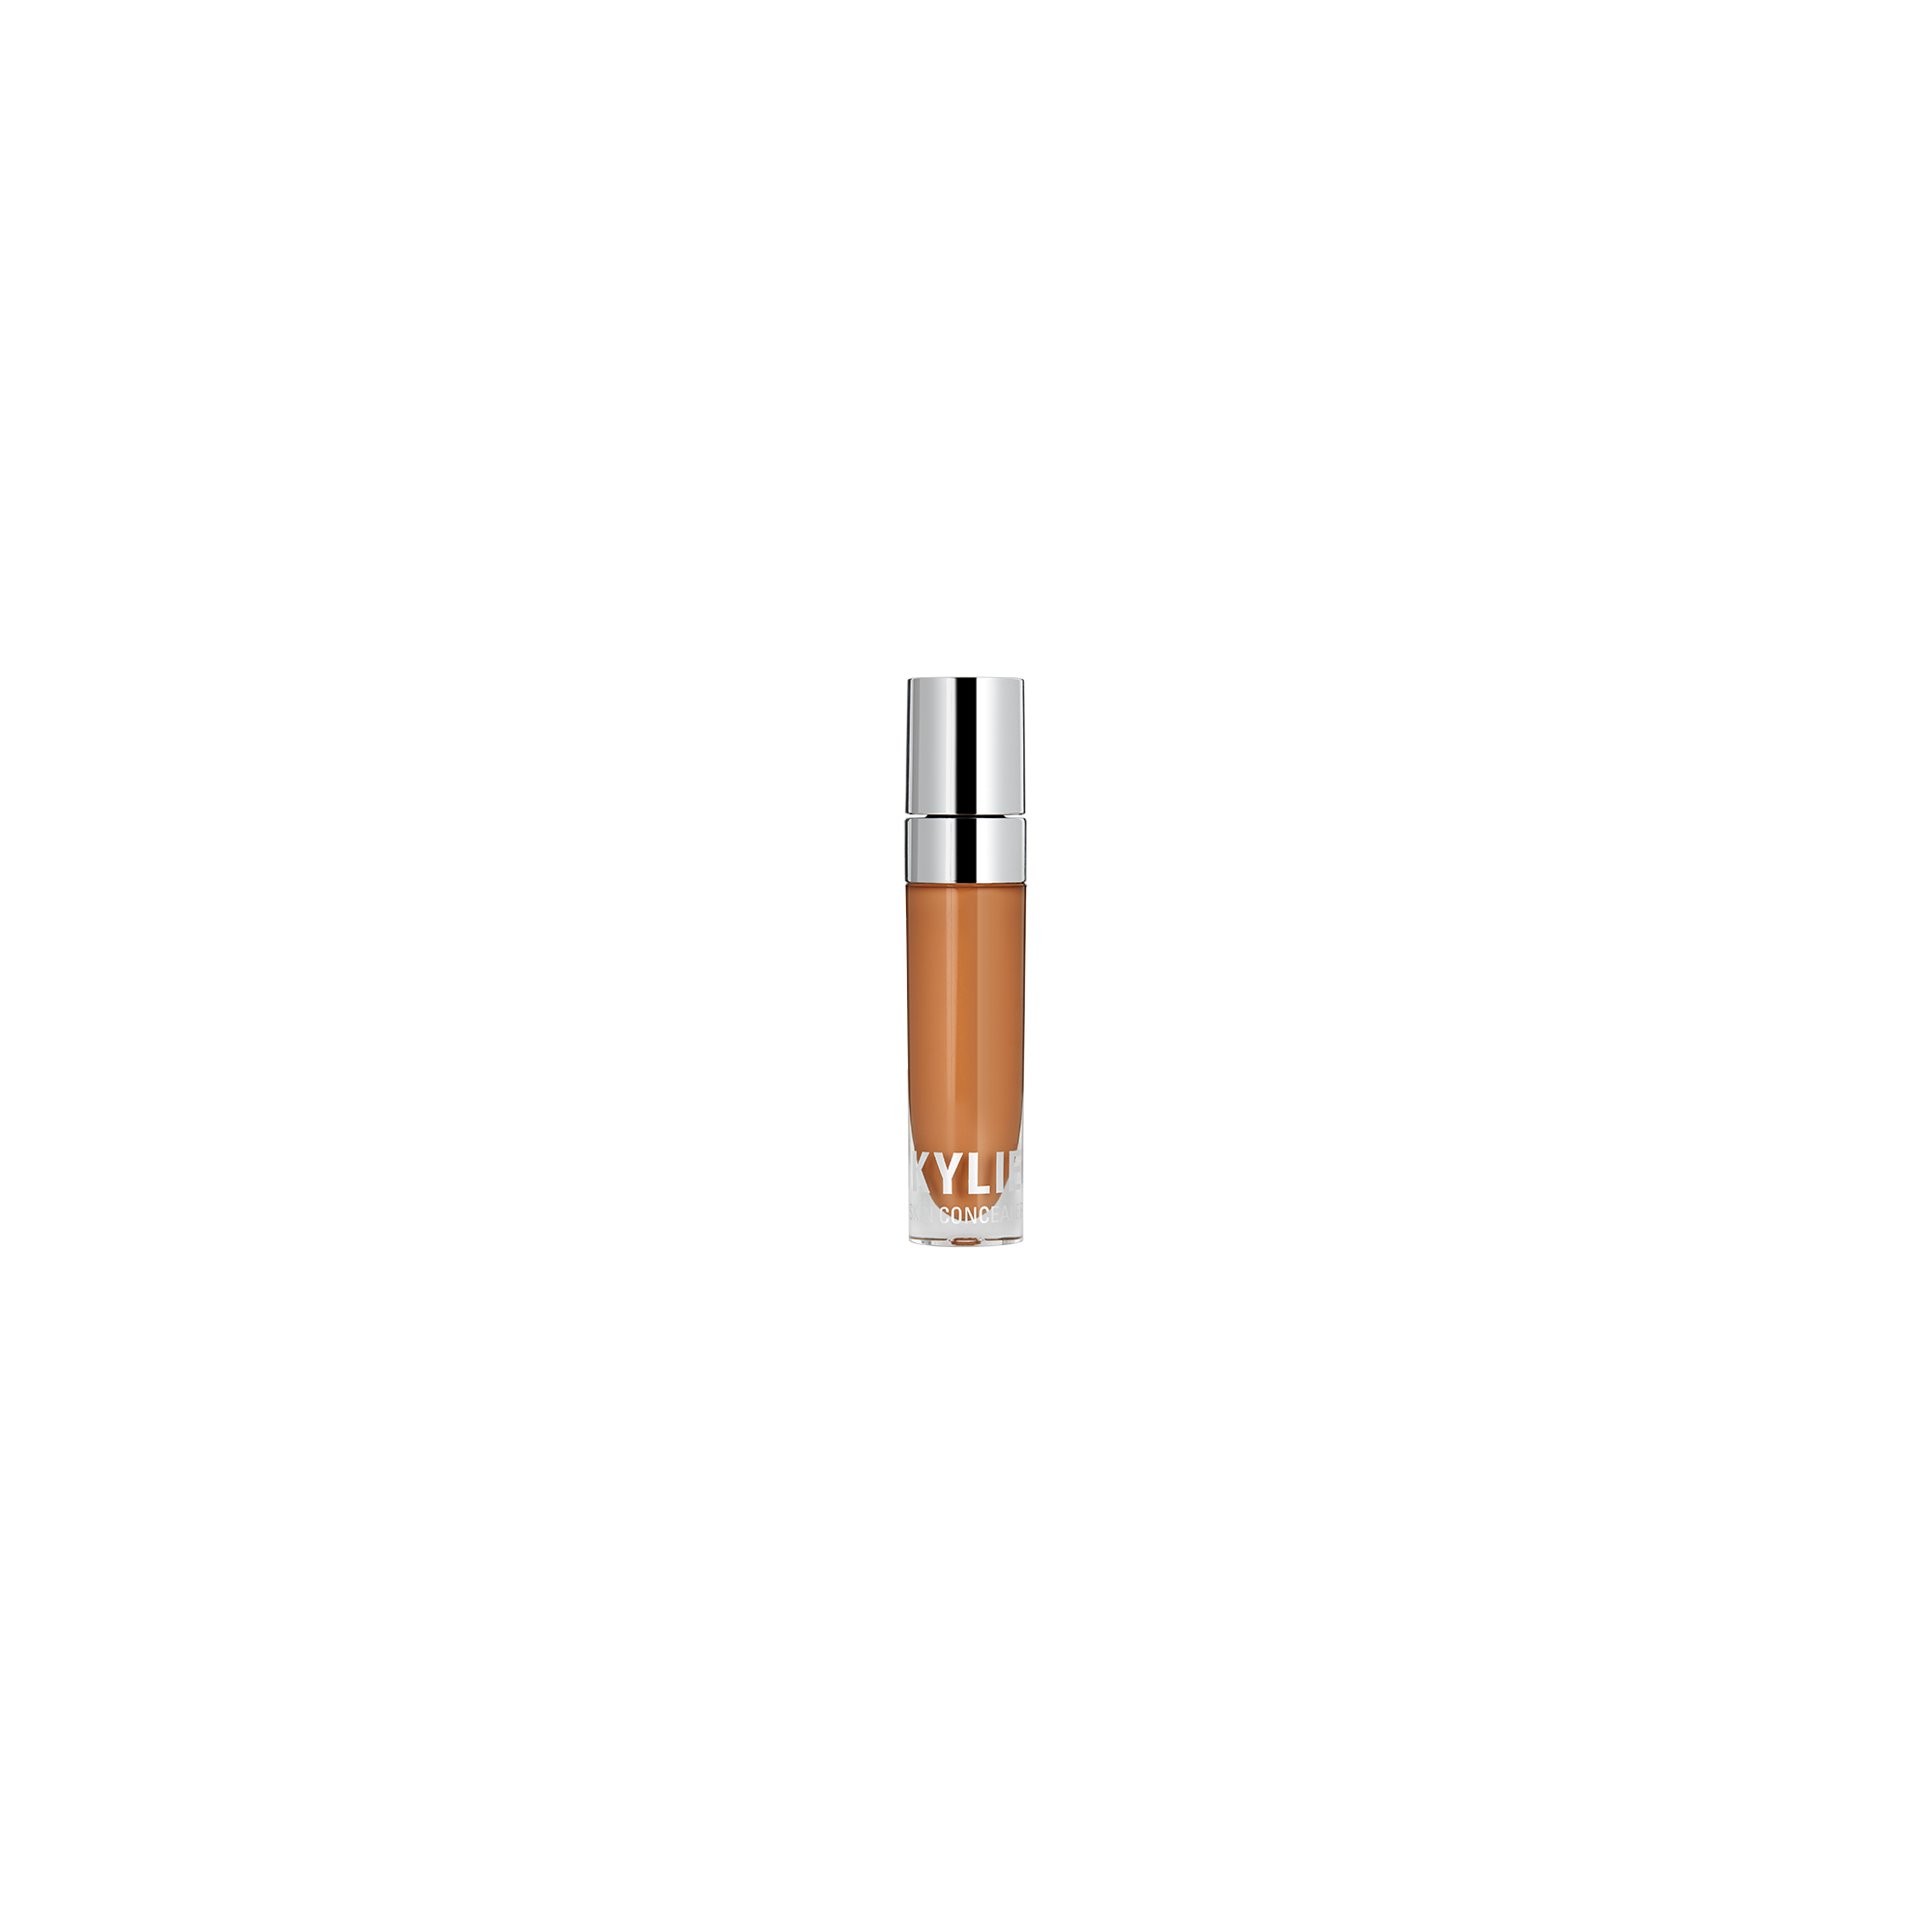 Kylie Cosmetics The Silver Series Collection Skin Concealer Cinnamon